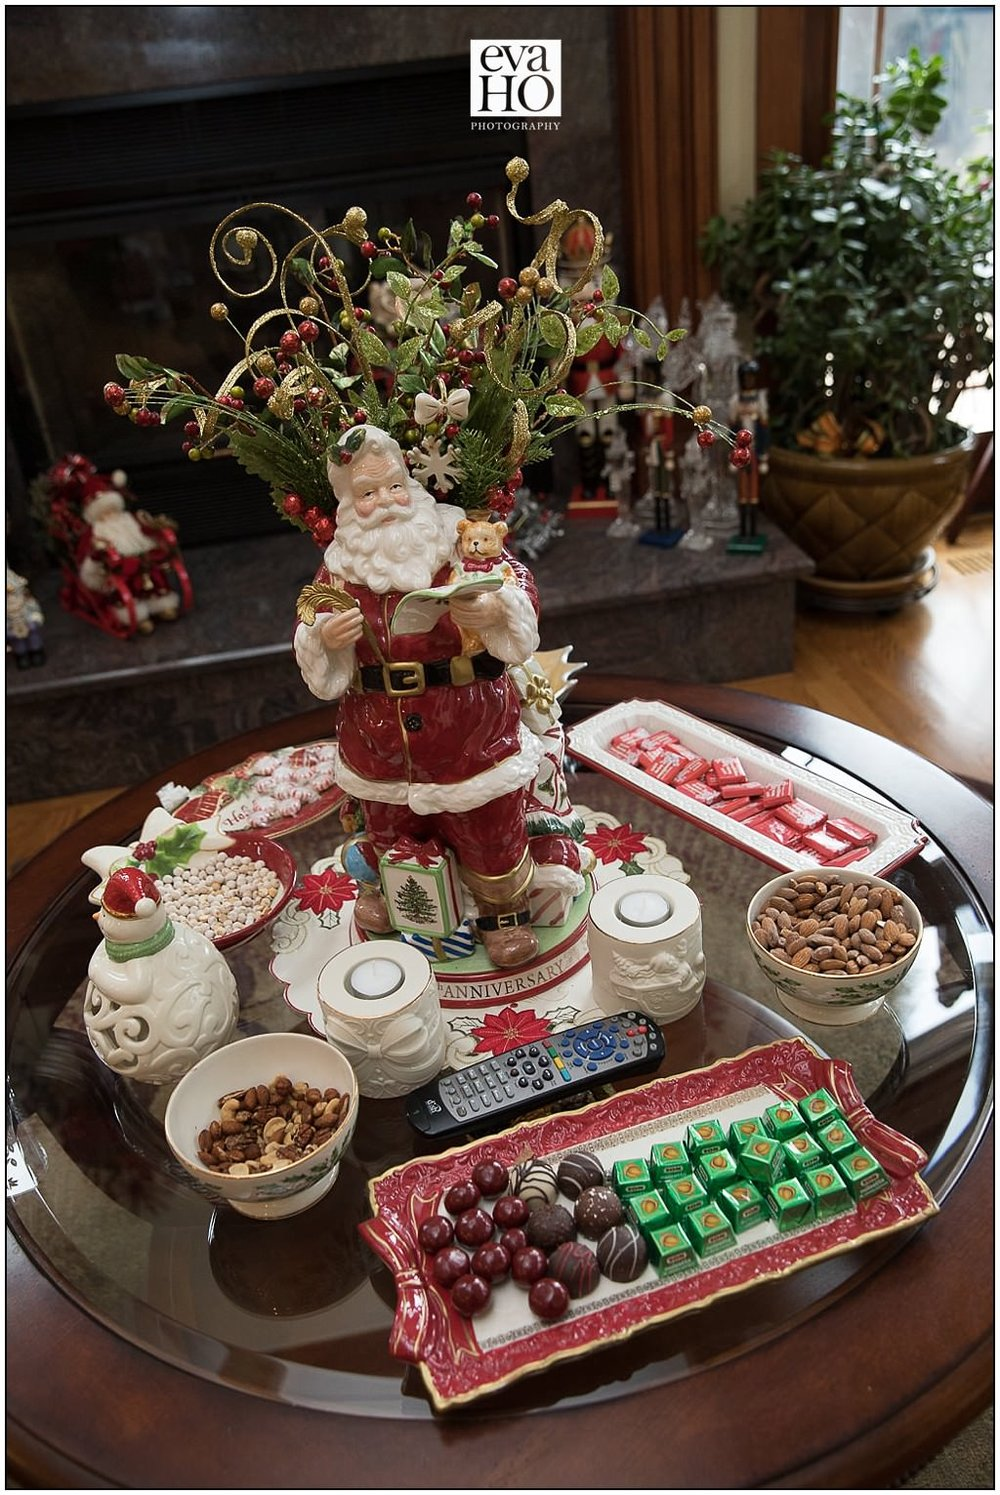 To say Kiki's mom loves Christmas is an understatement.  She spent her entire life collecting Christmas ornaments, dolls, decorations and every inch of the house was festive.  With the wedding being right after Christmas, some sweet holiday treats fit for Santa were a must!